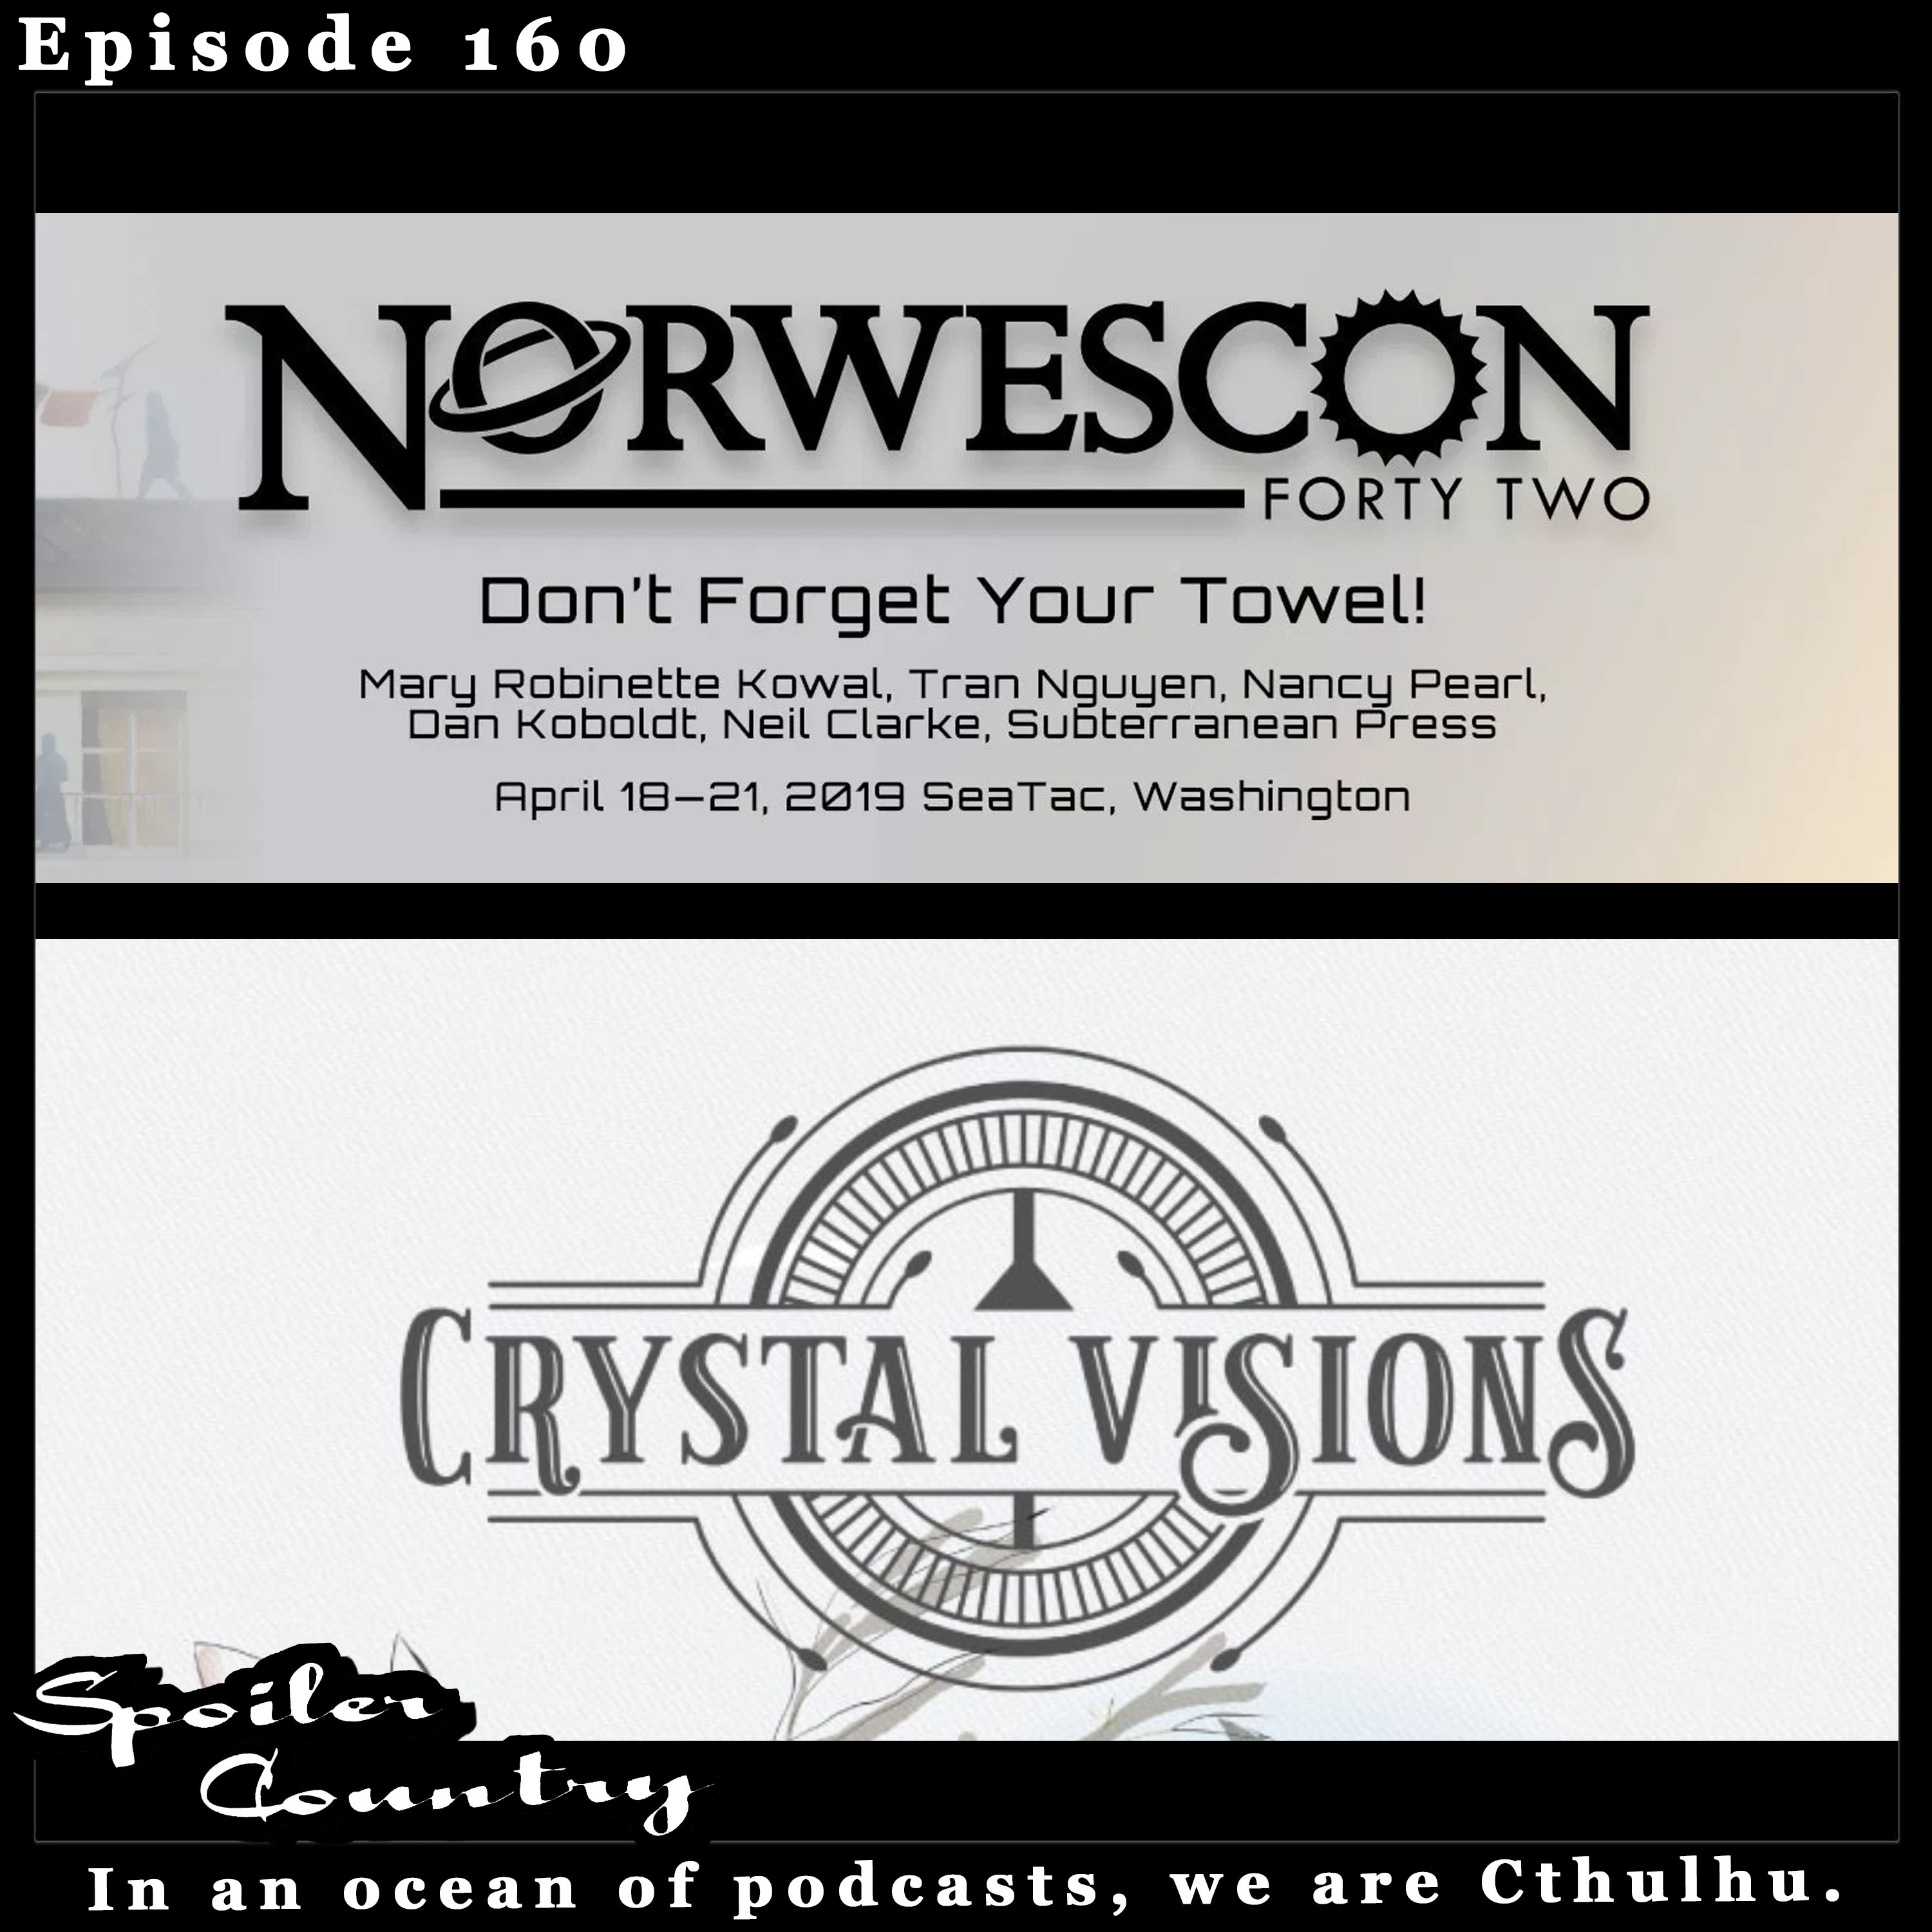 Norwescon with Michael Hanscom and Tiffany McLeod from Crystal Visions!